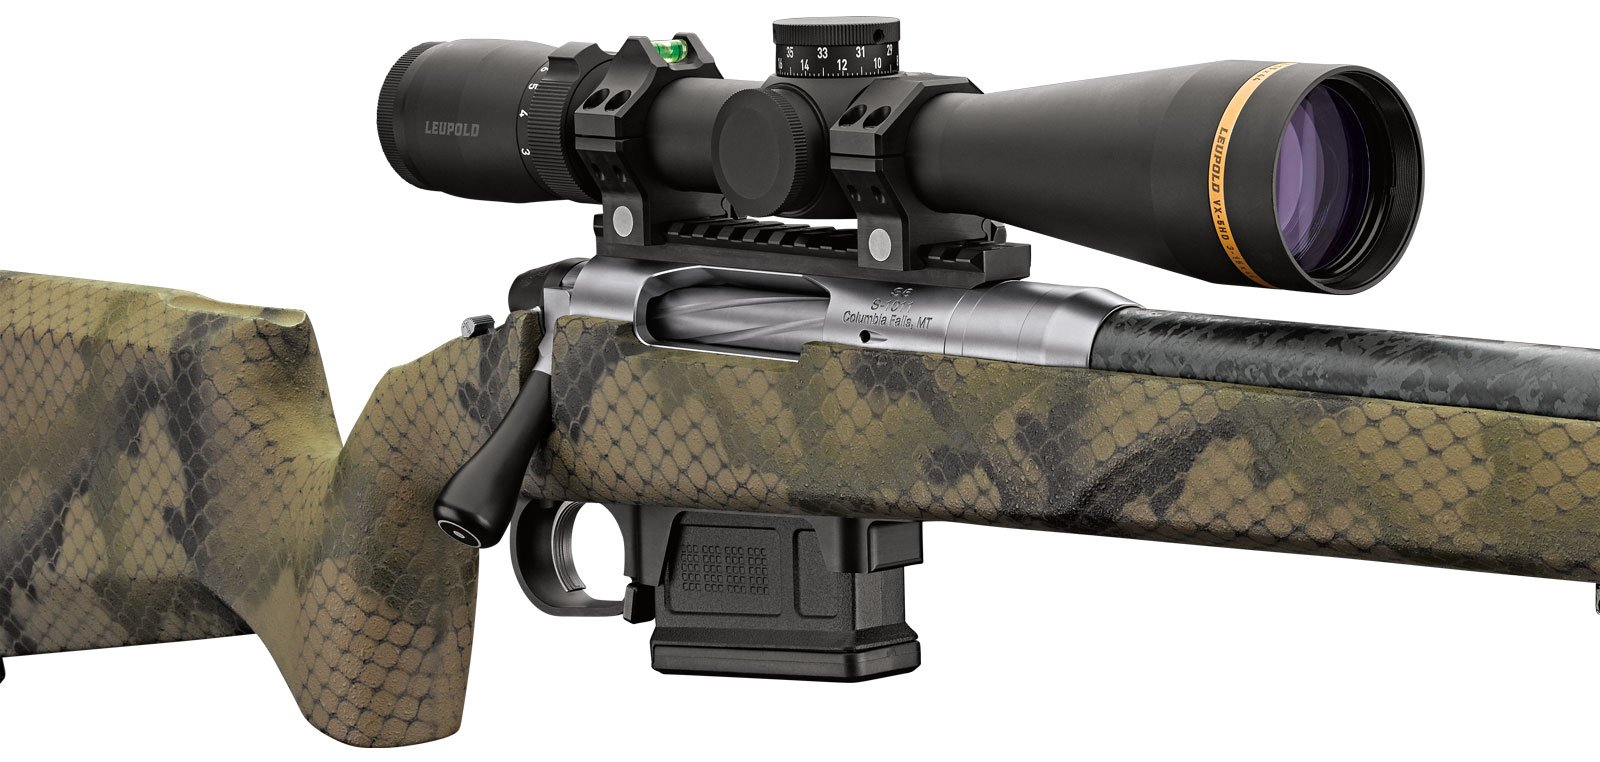 Switch Rifle from PROOF Research - available in camo and other colors.